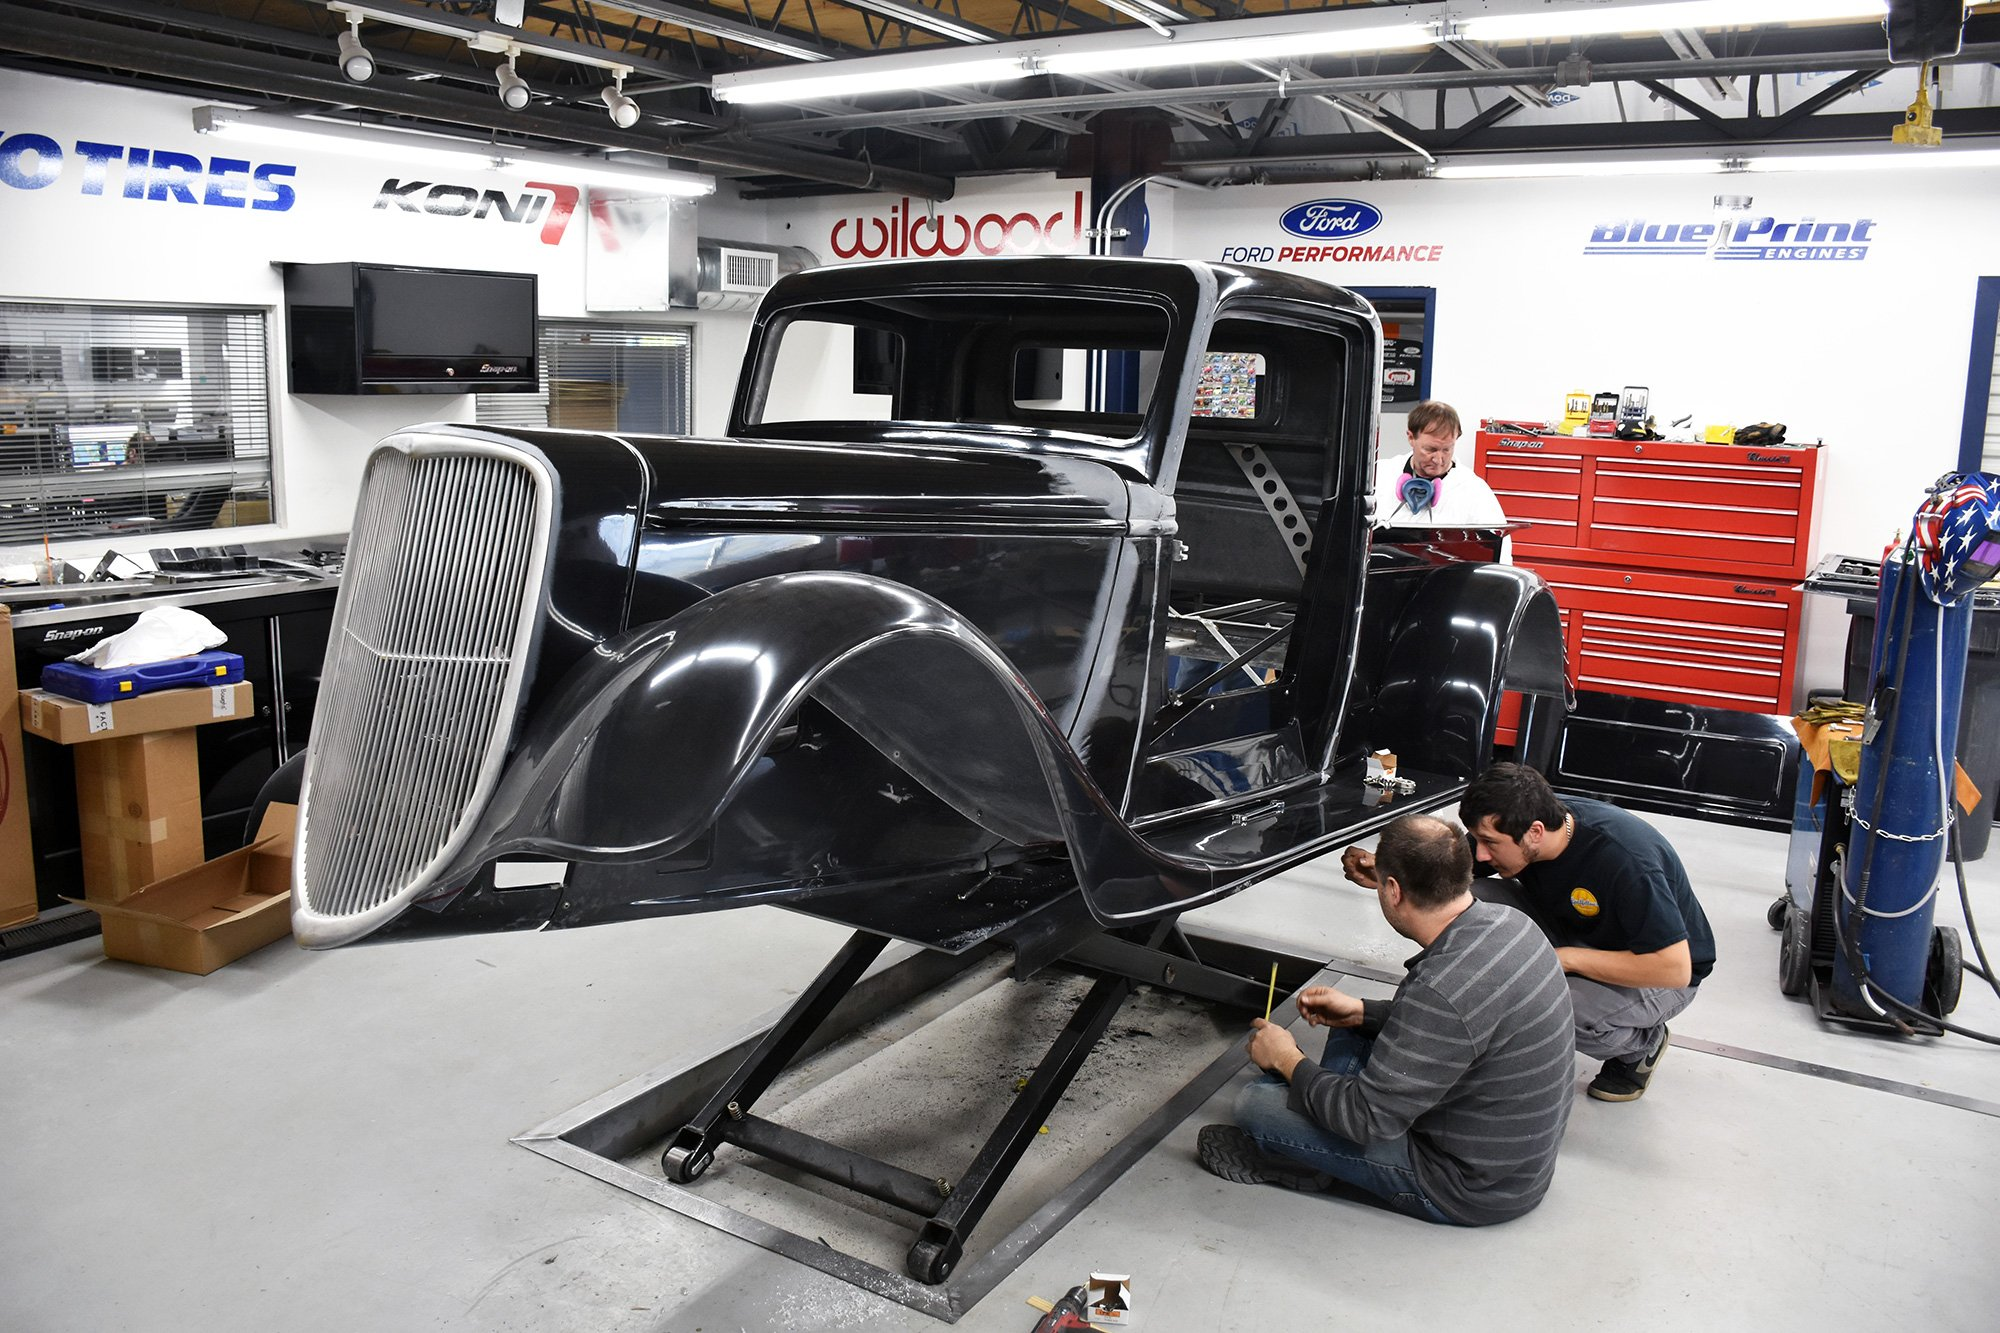 Factory five racing on twitter the crew is working hard to wrap up factory five racing on twitter the crew is working hard to wrap up the week and we posted an update on where we are with our new 35 hotrod truck malvernweather Image collections